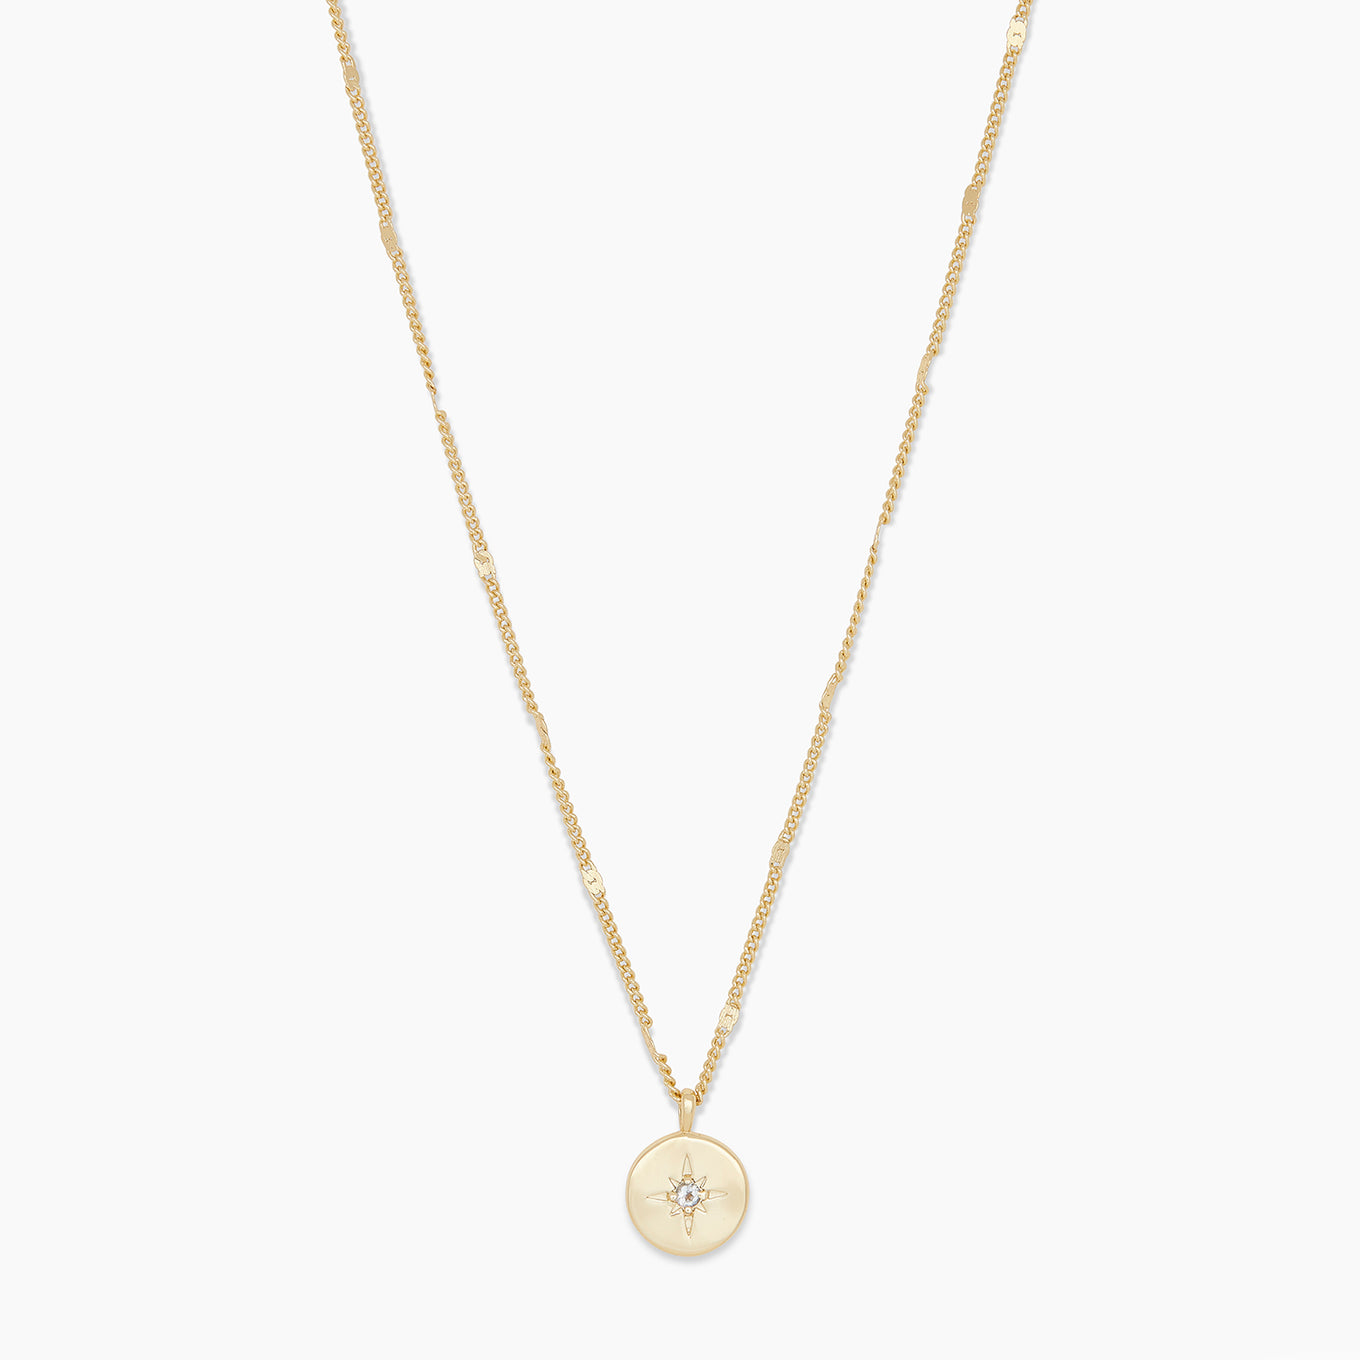 Gorjana Jewelry Gold Power Birthstone Coin Necklace March